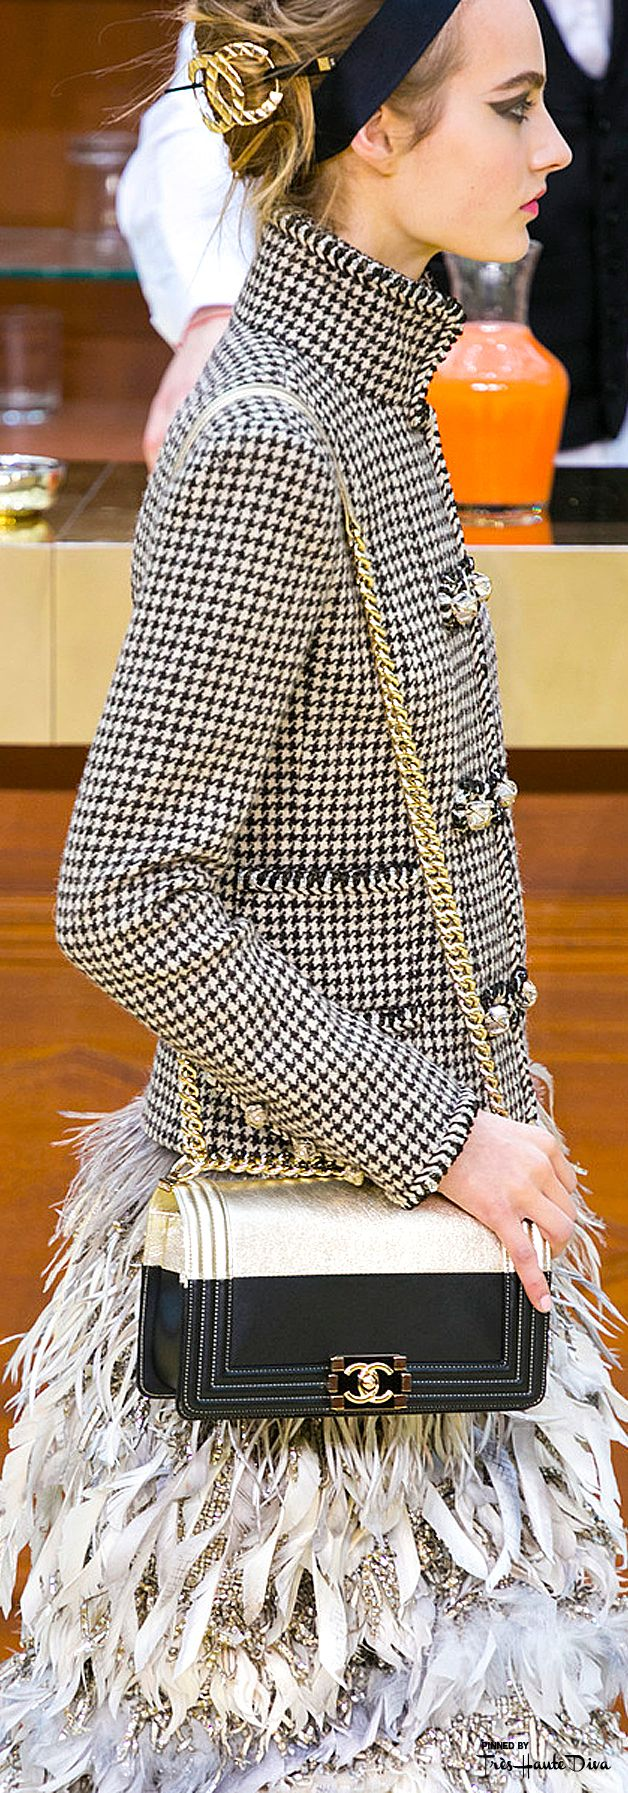 Chanel Fall 2015 RTW detail ♔THD♔